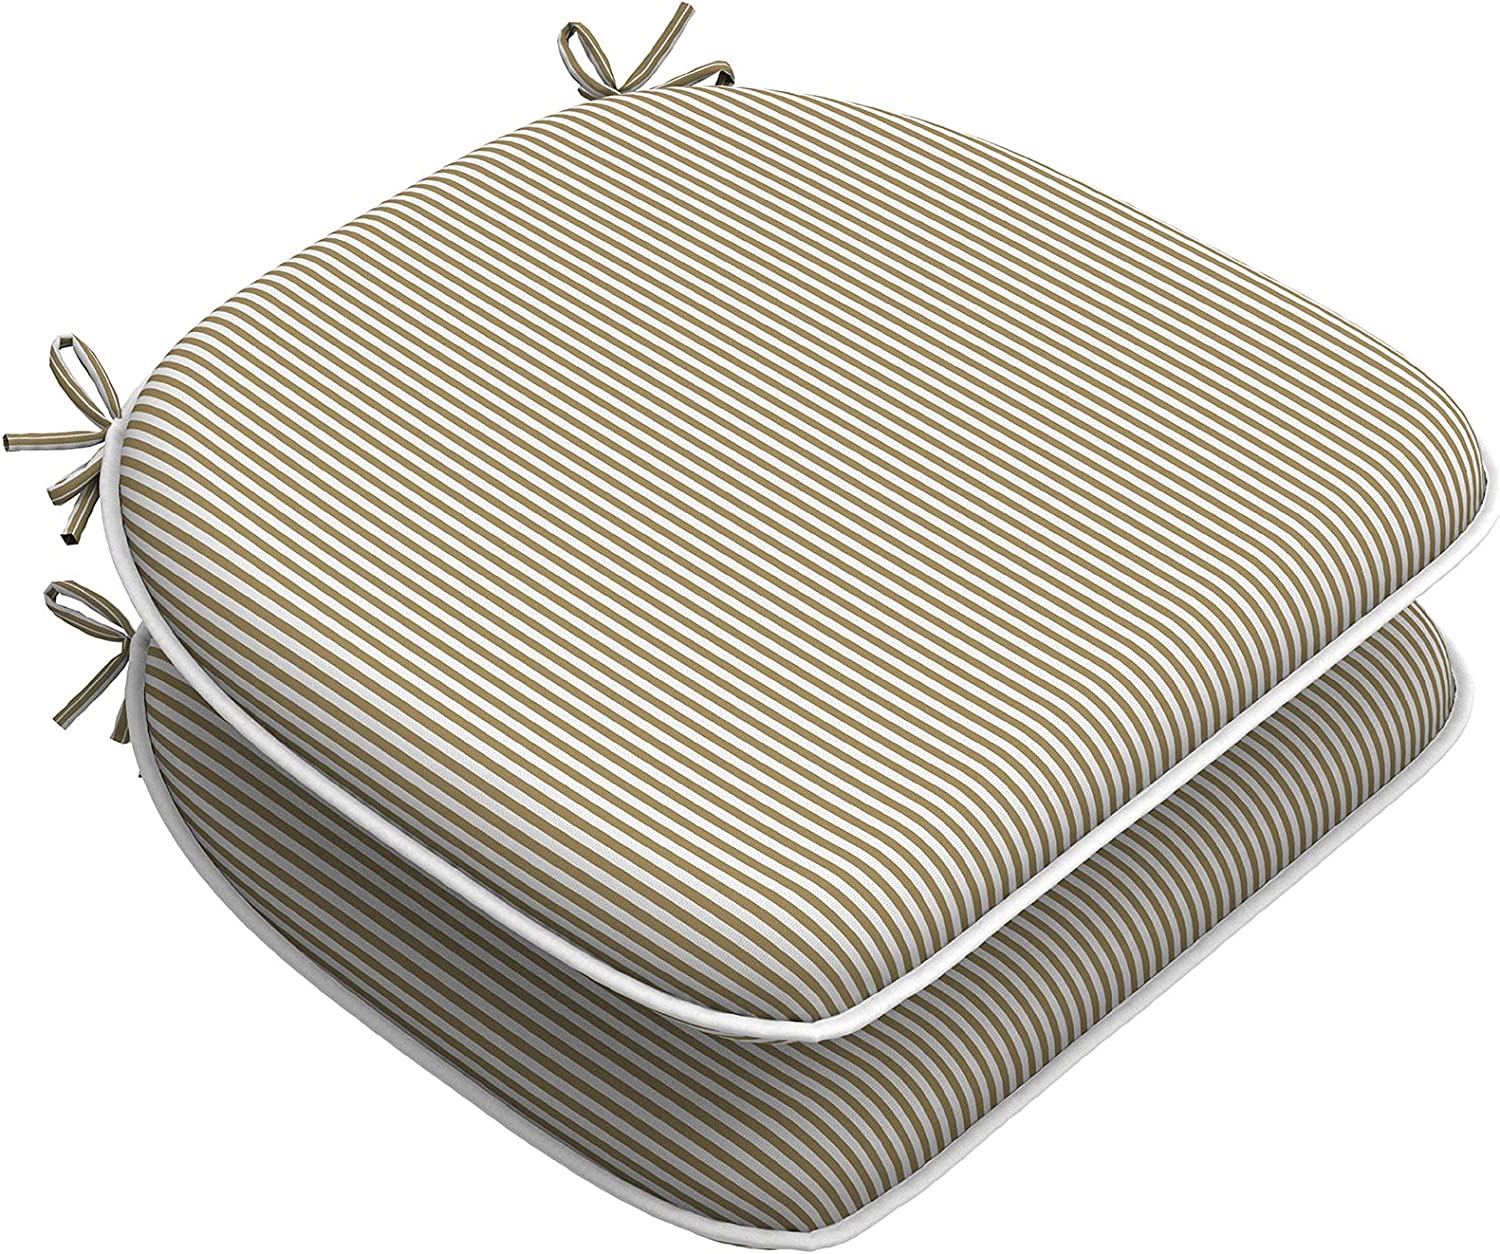 """LVTXIII Outdoor/Indoor Seat Cushions Patio Chair Pads with Ties, Water-Repellent Chair Cushions for Home Office and Patio Garden Furniture Decoration 16""""x17"""", Stripe Beige, Set of 2"""